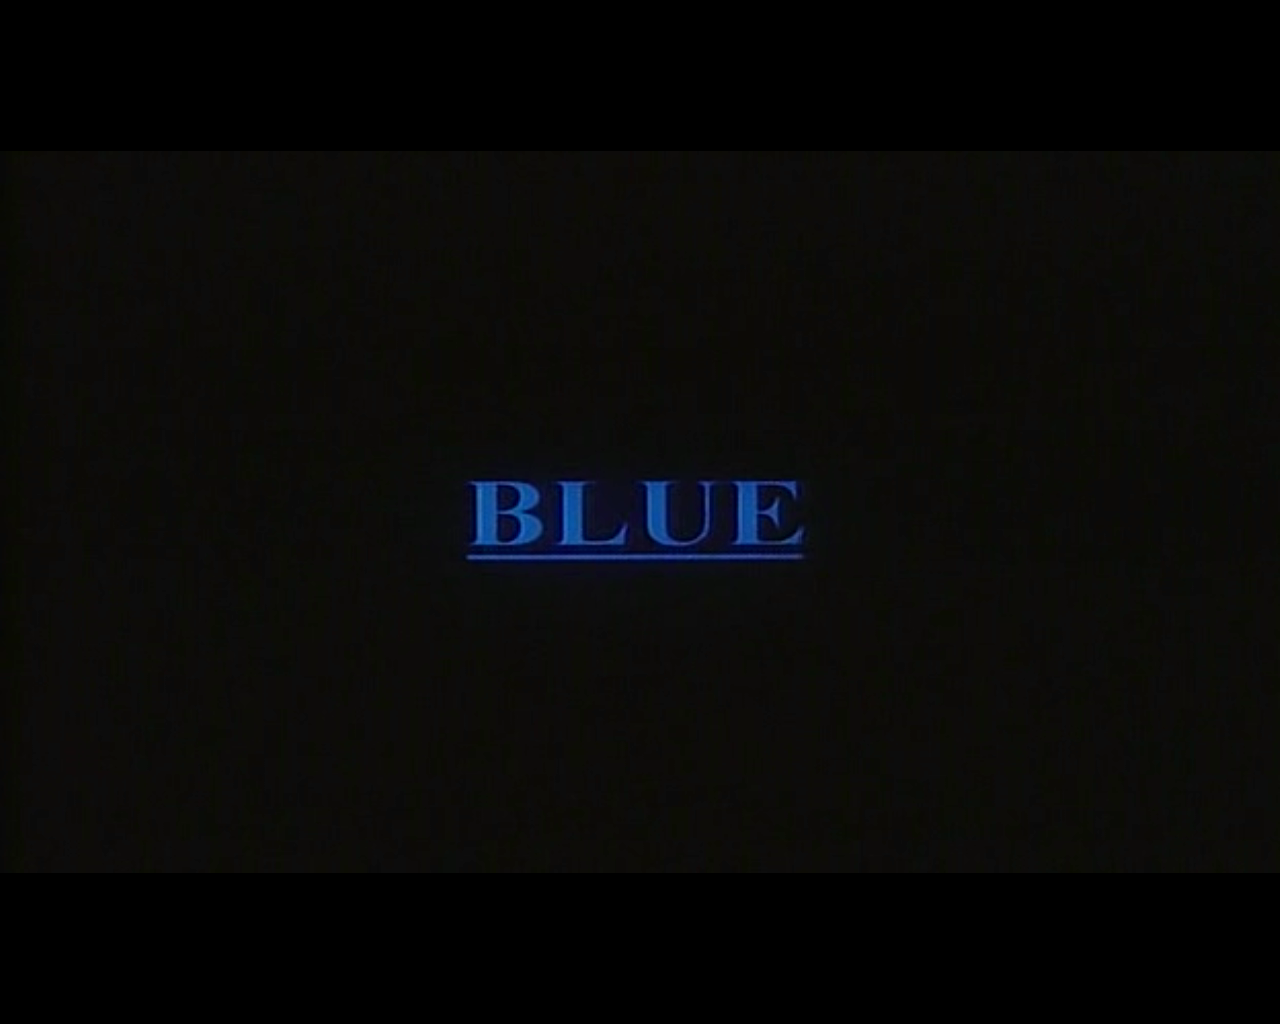 Blue-Derek-Jarman